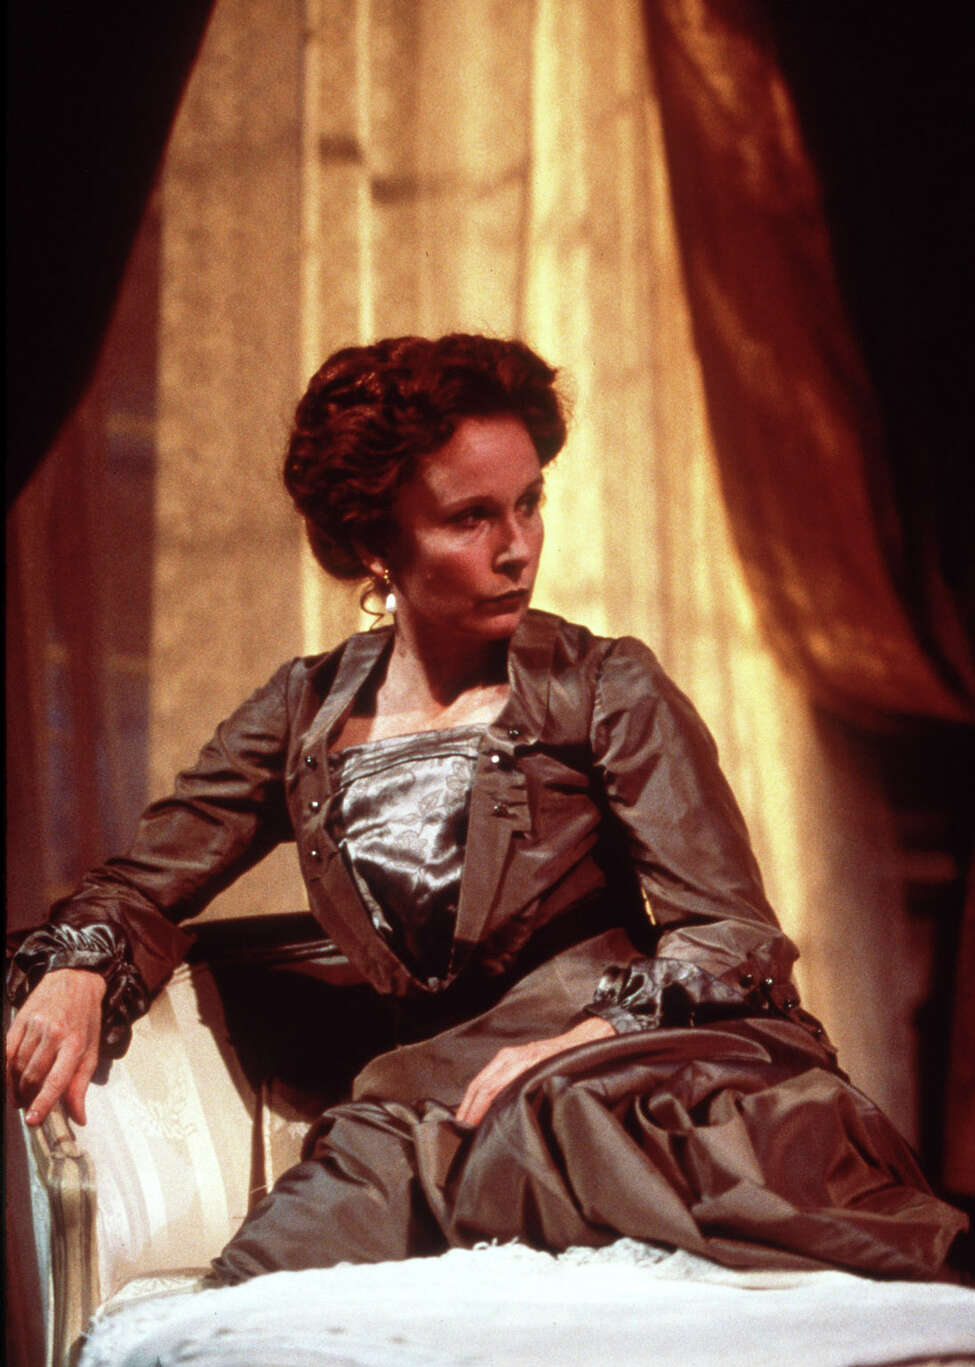 Kate Burton plays the title role in the revival of Ibsen's 'Hedda Gabler,' currently playing at Broadway's Ambassador Theatre. Broadway grosses, buoyed by the arrival of fall shows, have climbed steadily since the first weekend after the attacks. Last week, total grosses rose to $11.9 million, not far off from business before Sept. 11. (AP Photo/ Boneau/Bryan-Brown/Charles Erickson) .